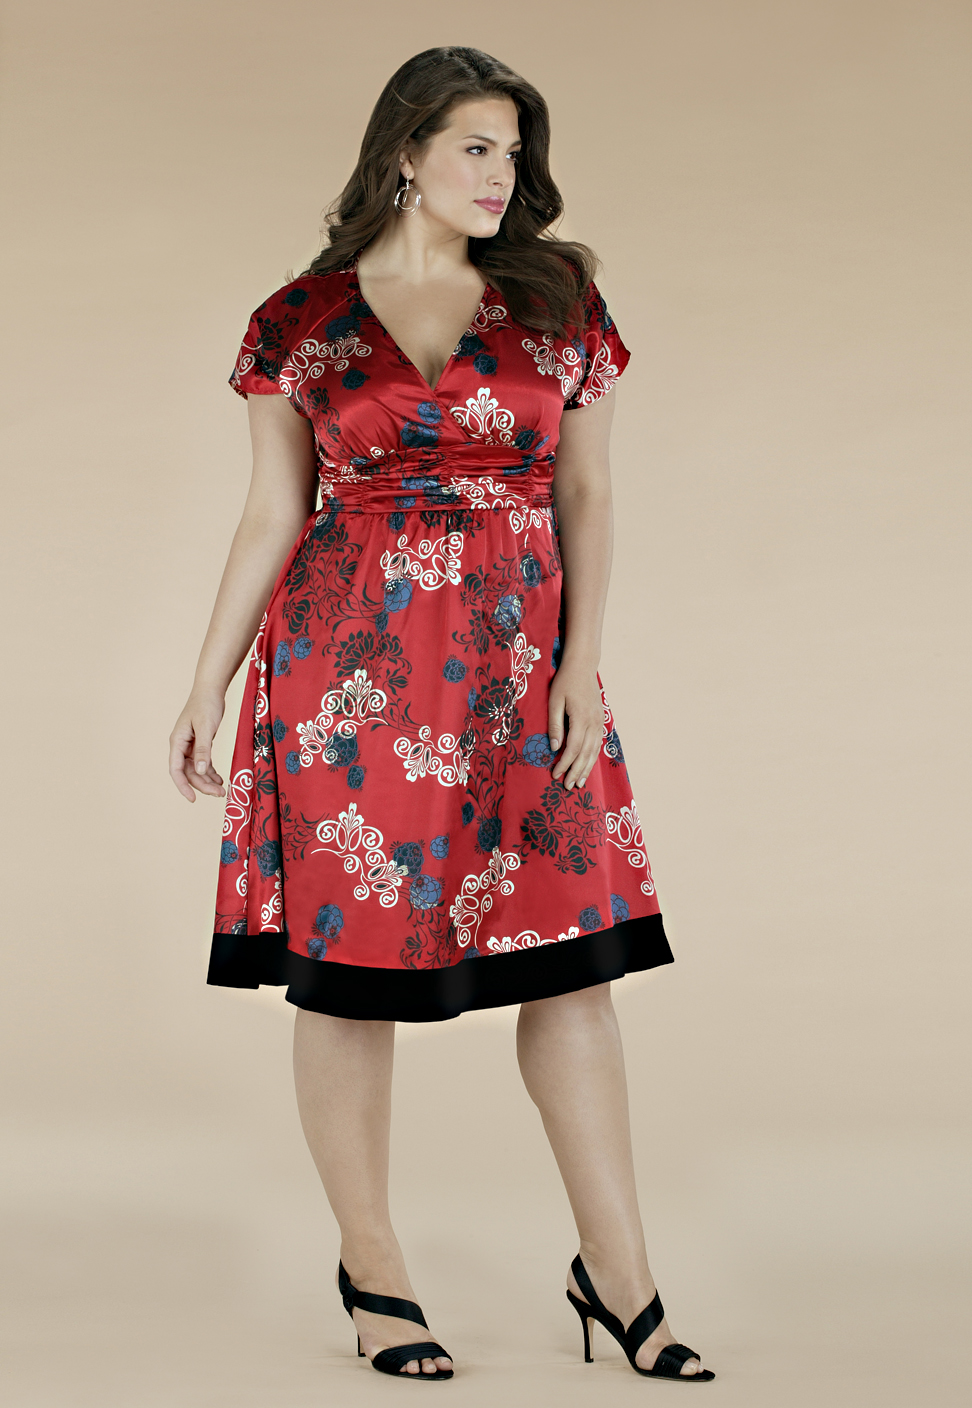 Cheap Designer Clothes For Plus Size Women Plus Size Clothing for Women